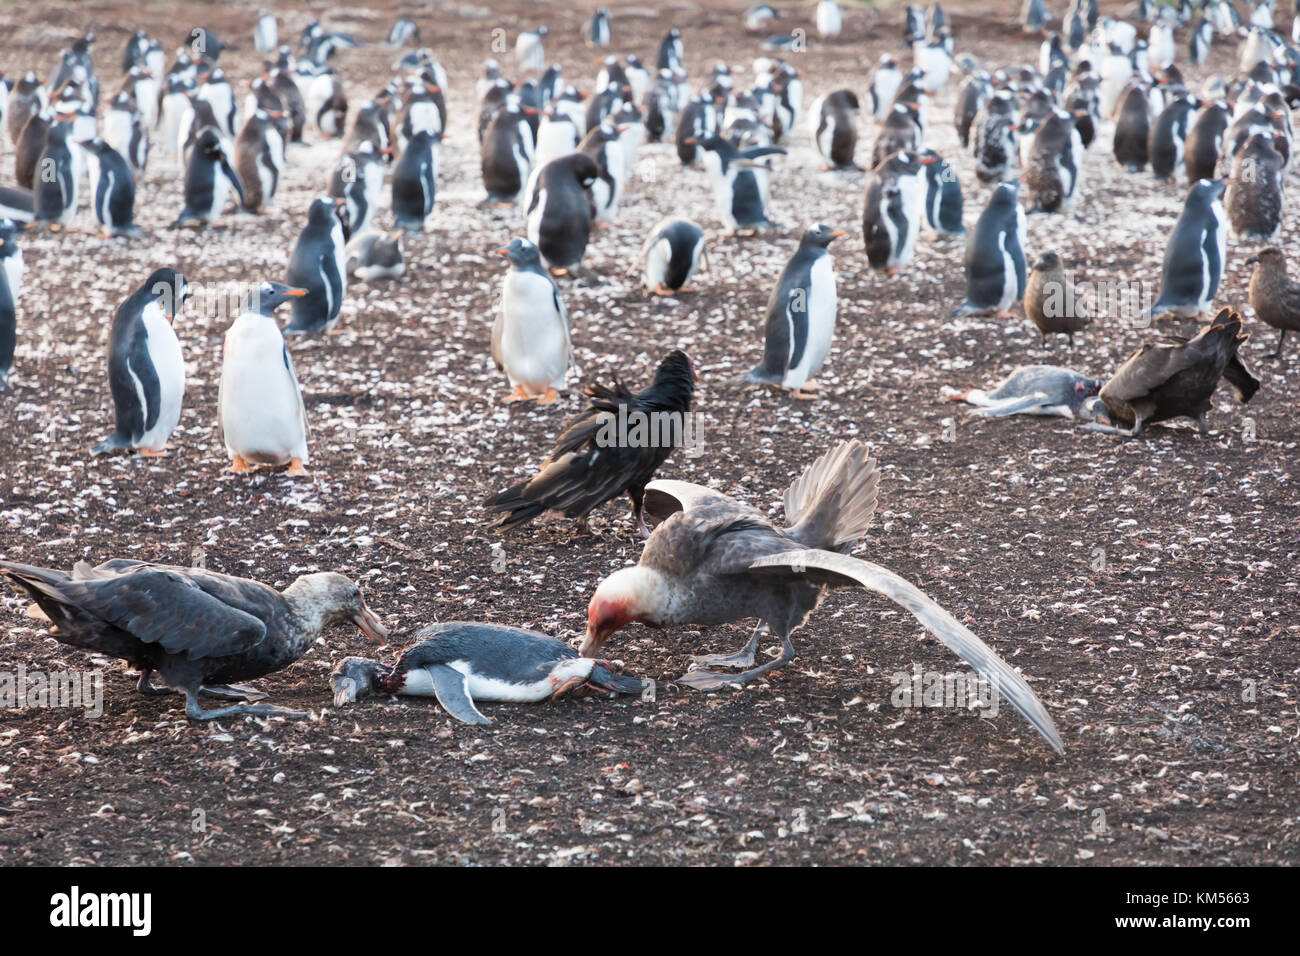 Giant petrels feeding on dead gentoo penguin - Stock Image